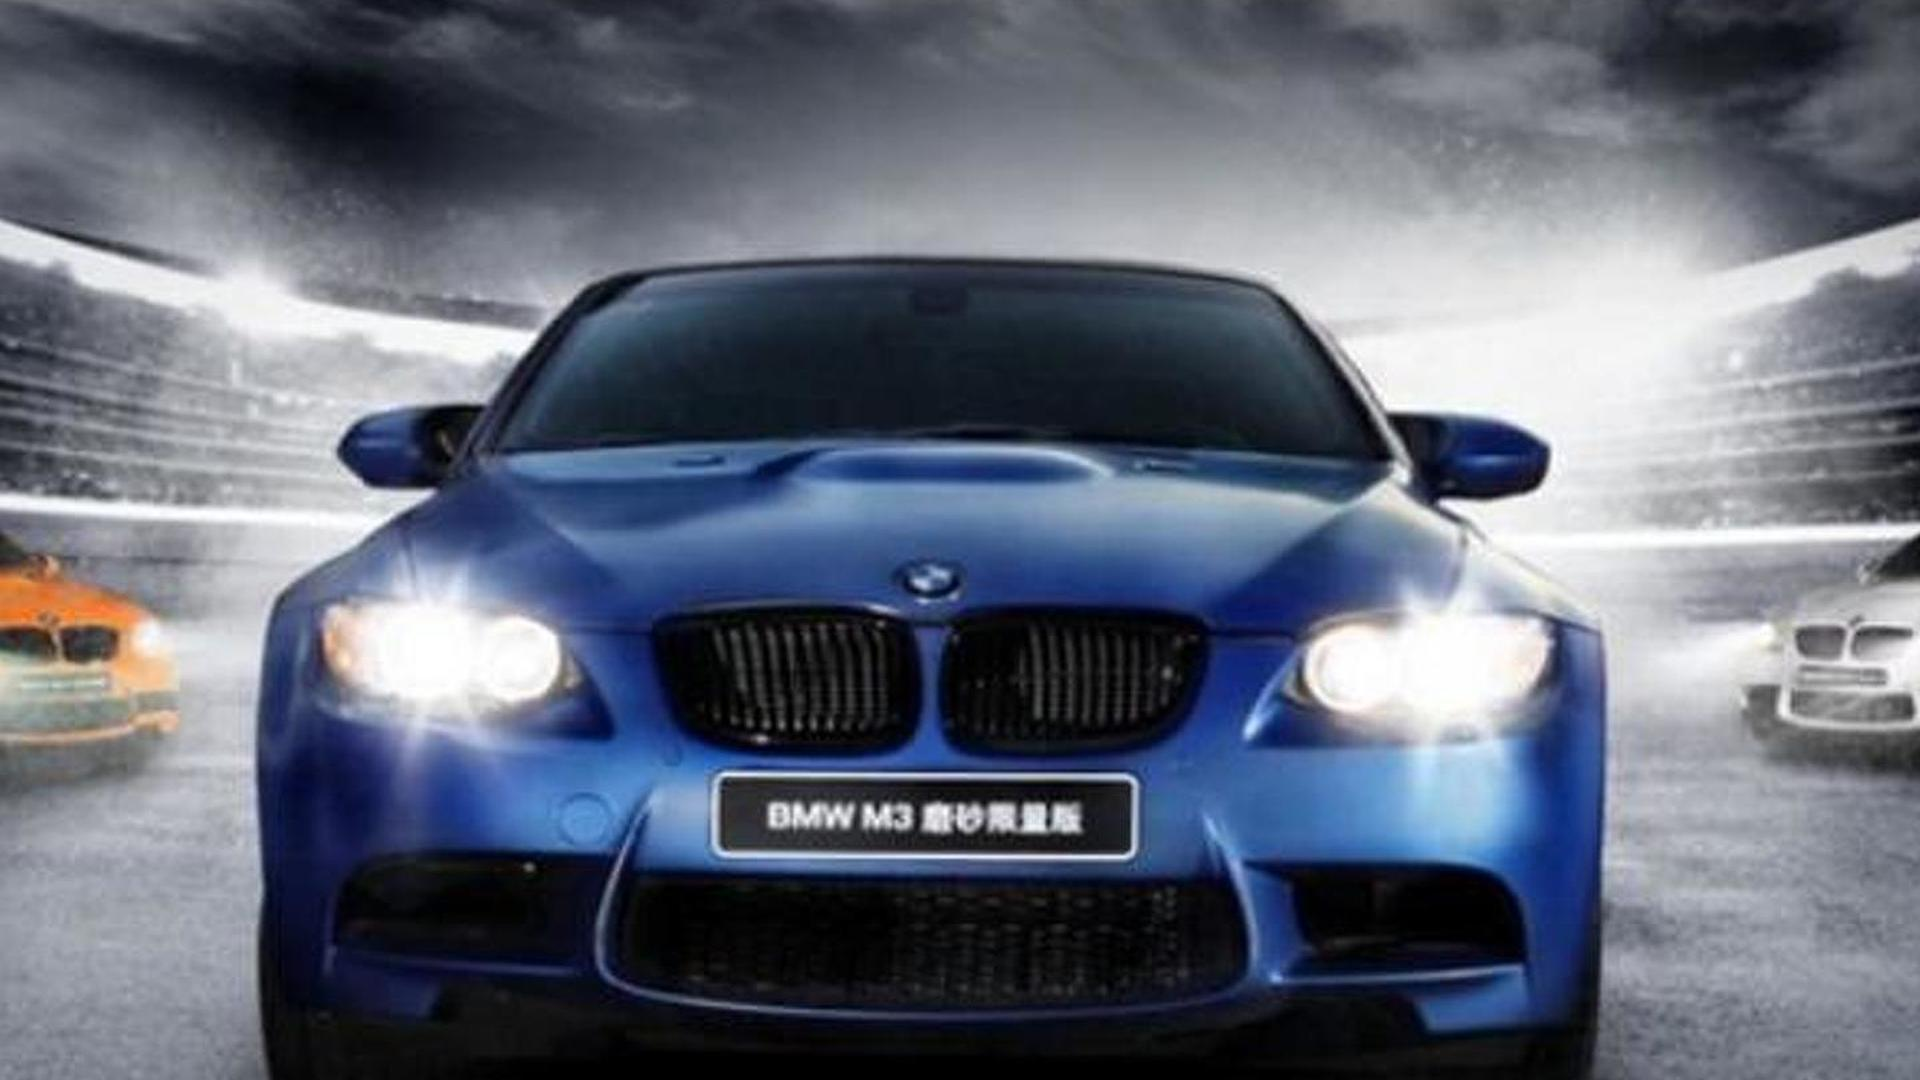 BMW M3 Coupe Frozen Blue limited edition announced for China